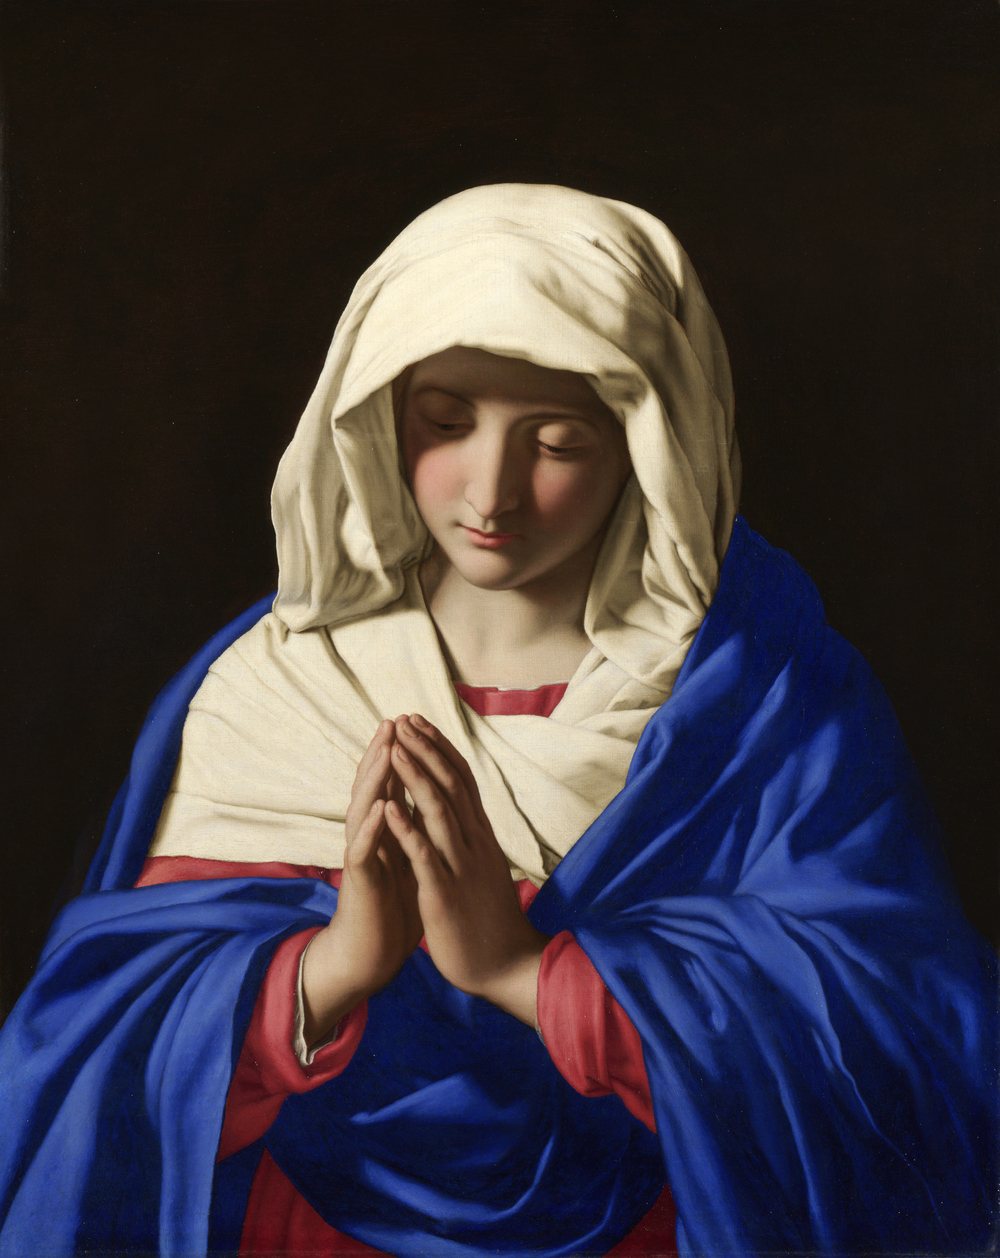 The Virgin Mary in Prayer by Sassoferrato